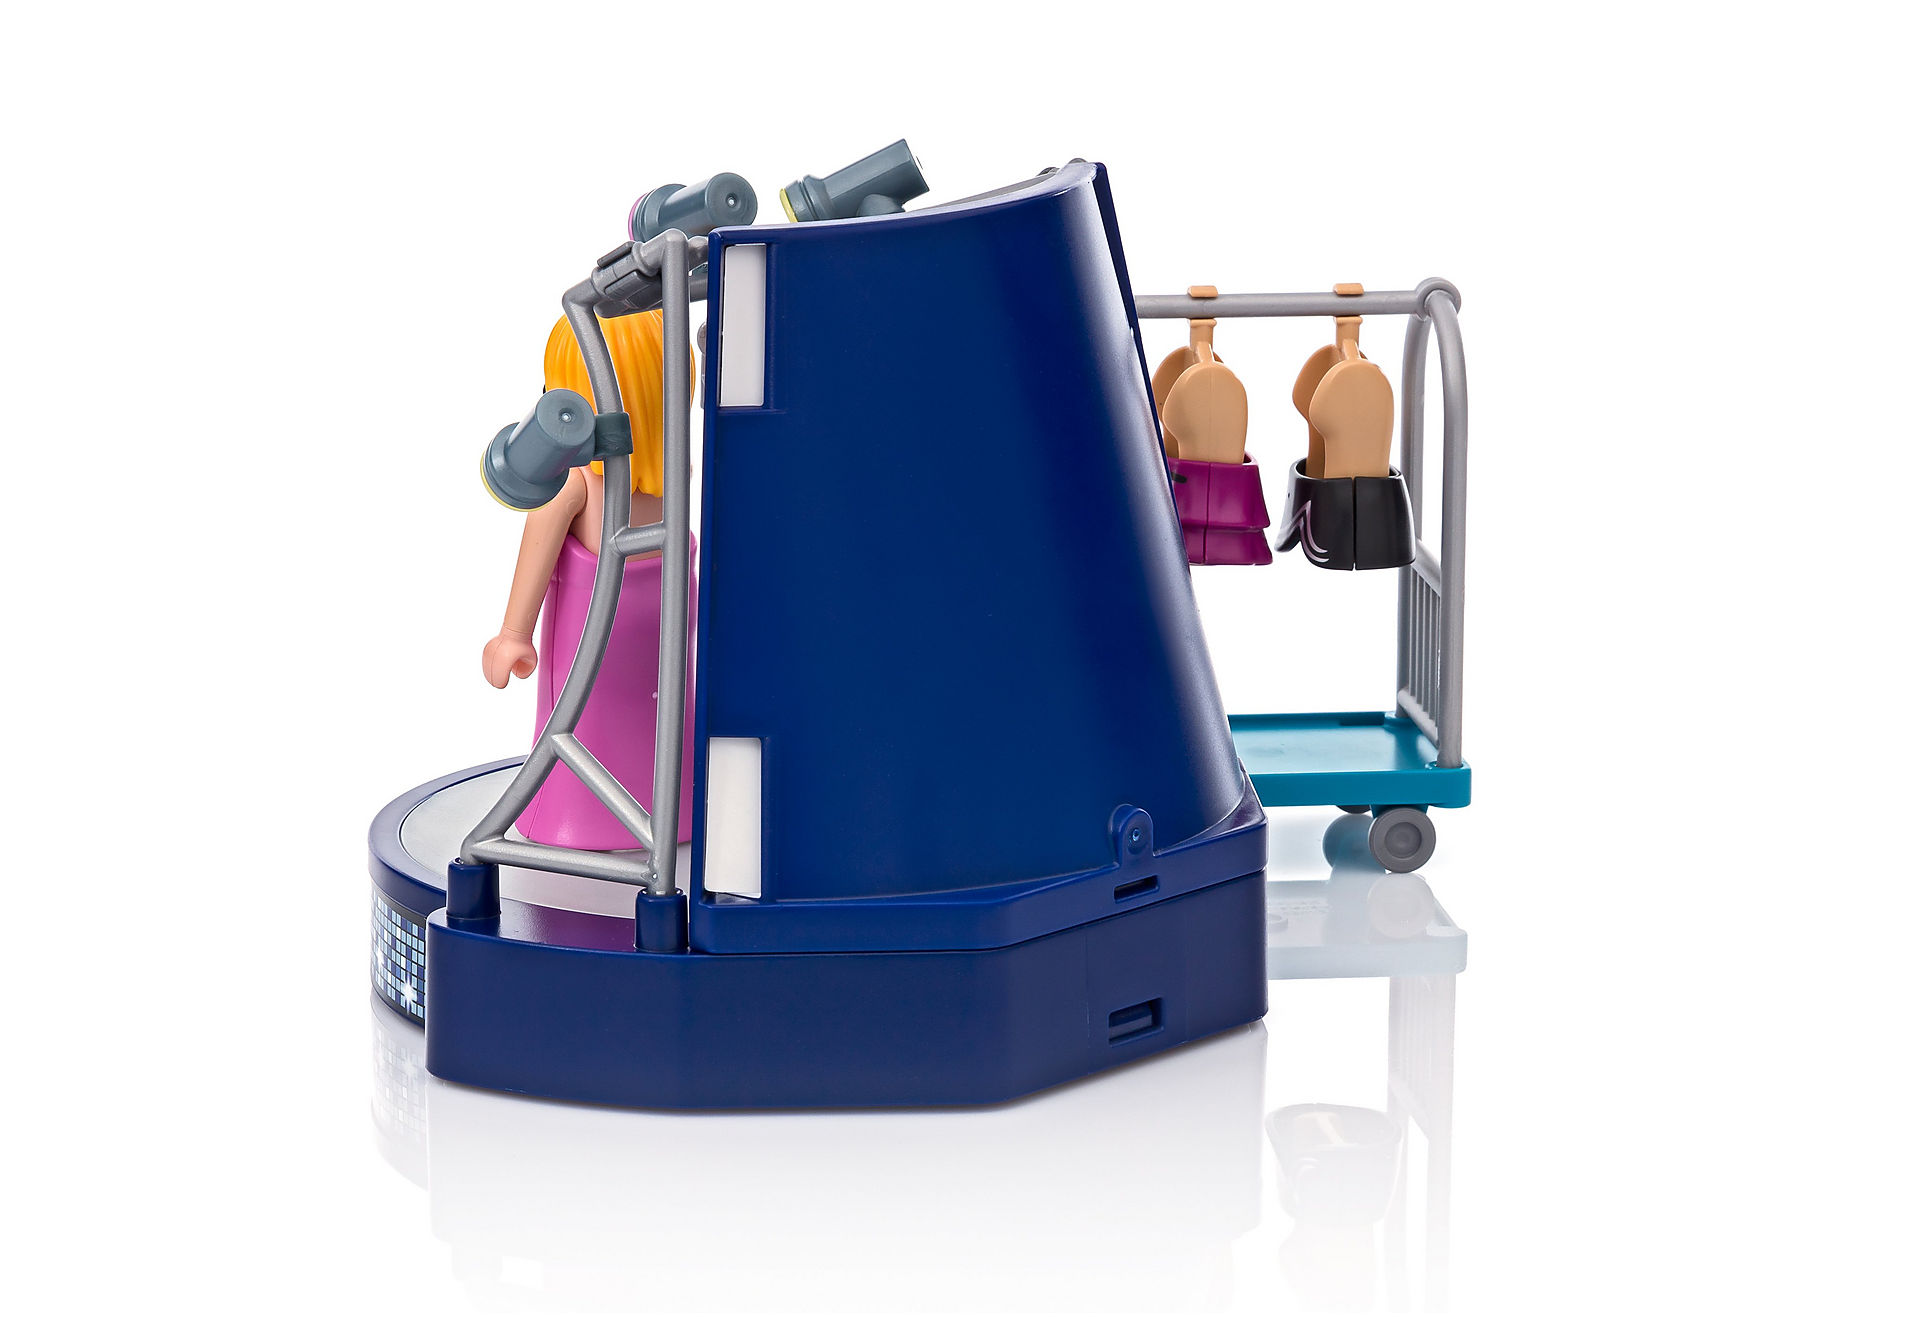 360degree image 16